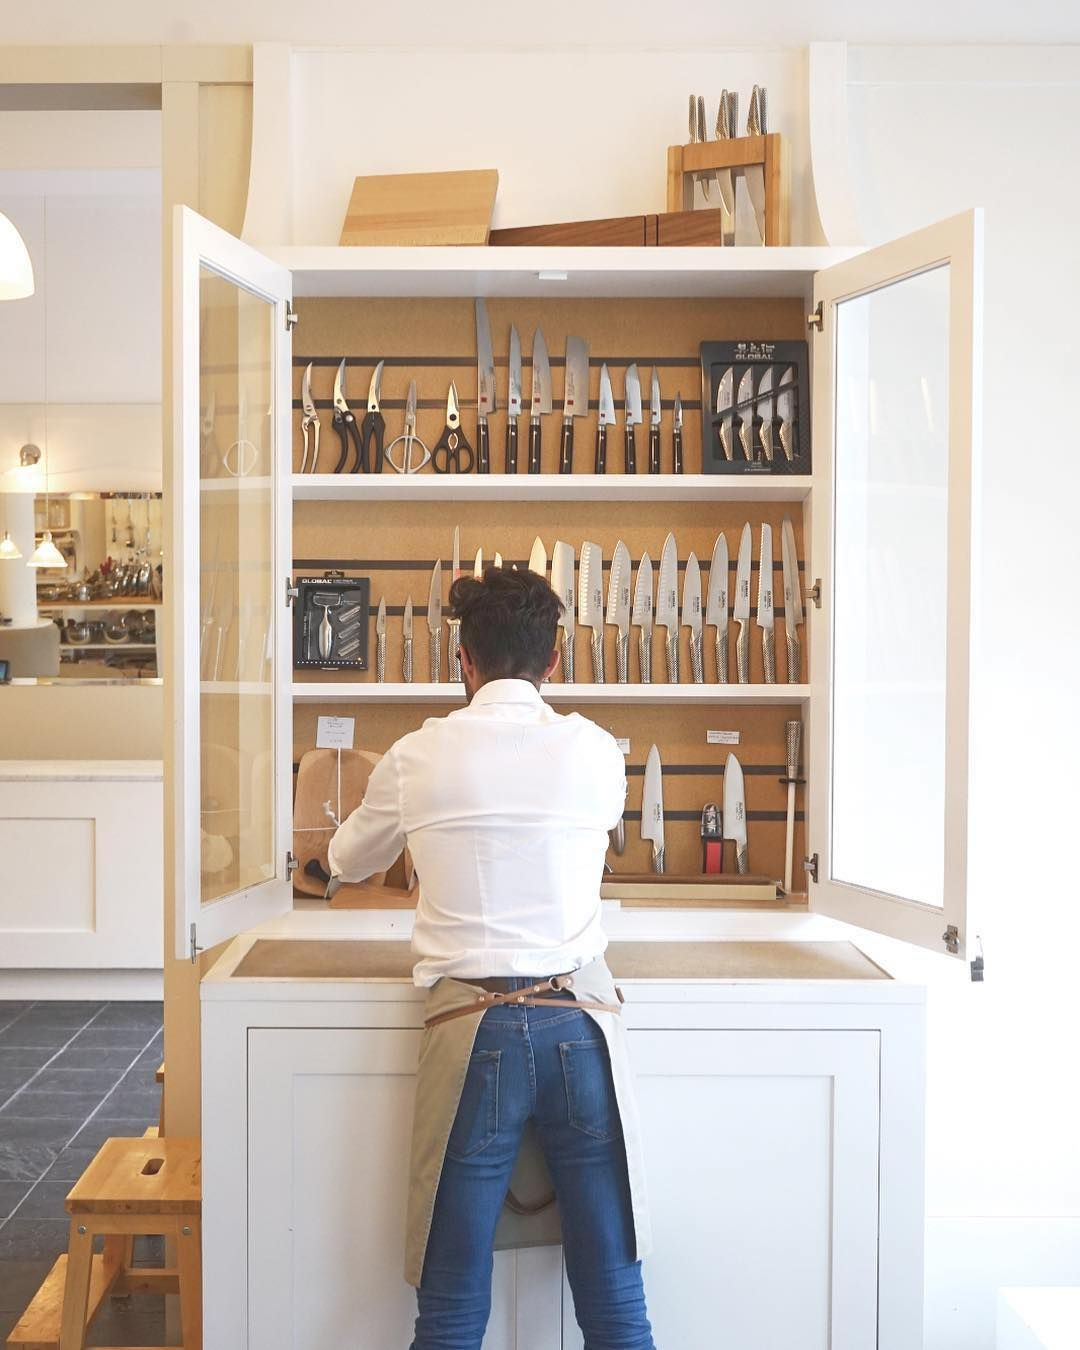 Located In Montrealu0027s Fashionable Outremont Neighborhood, Les Touilleurs Is  A High End Kitchen Emporium With A Working Demonstration Kitchen And An  Impecca